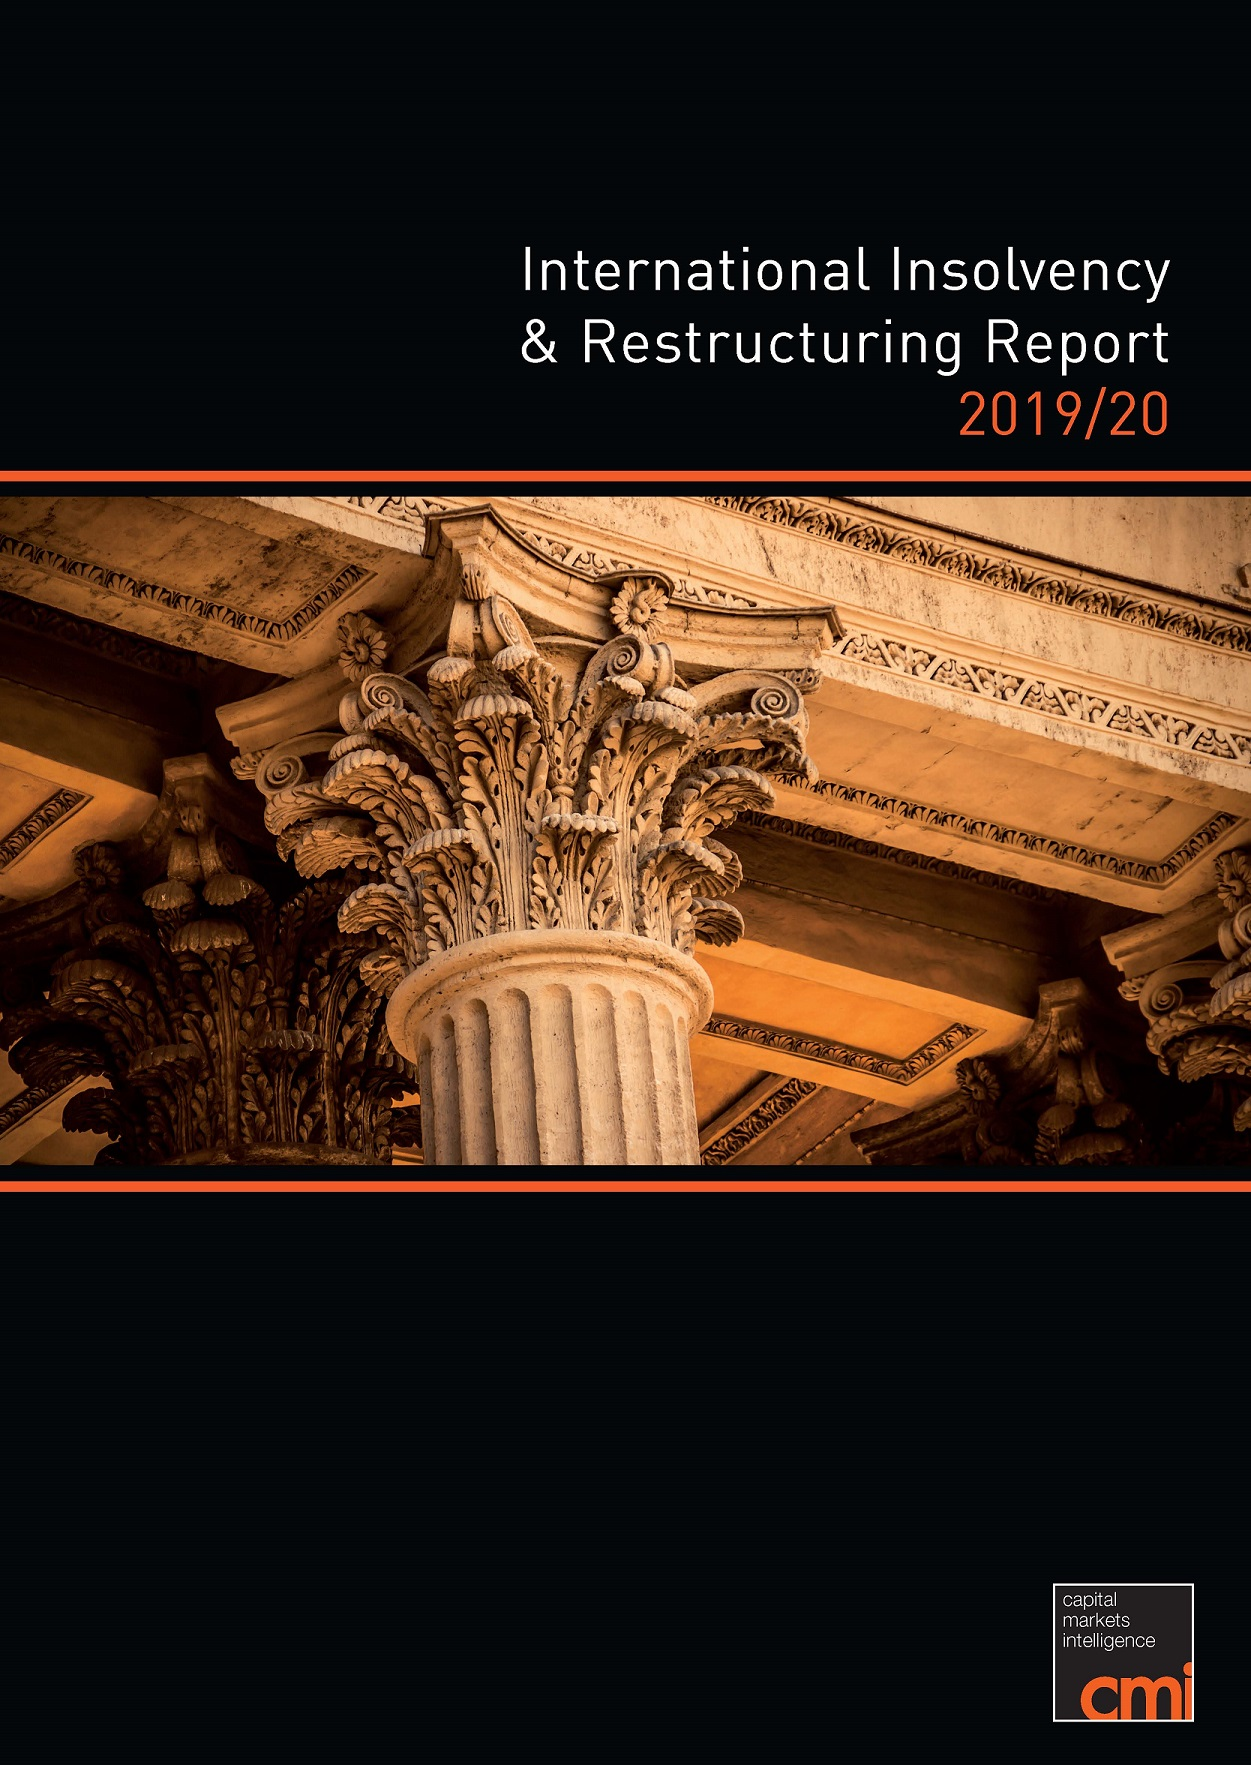 International Insolvency & Restructuring Report 2019/20